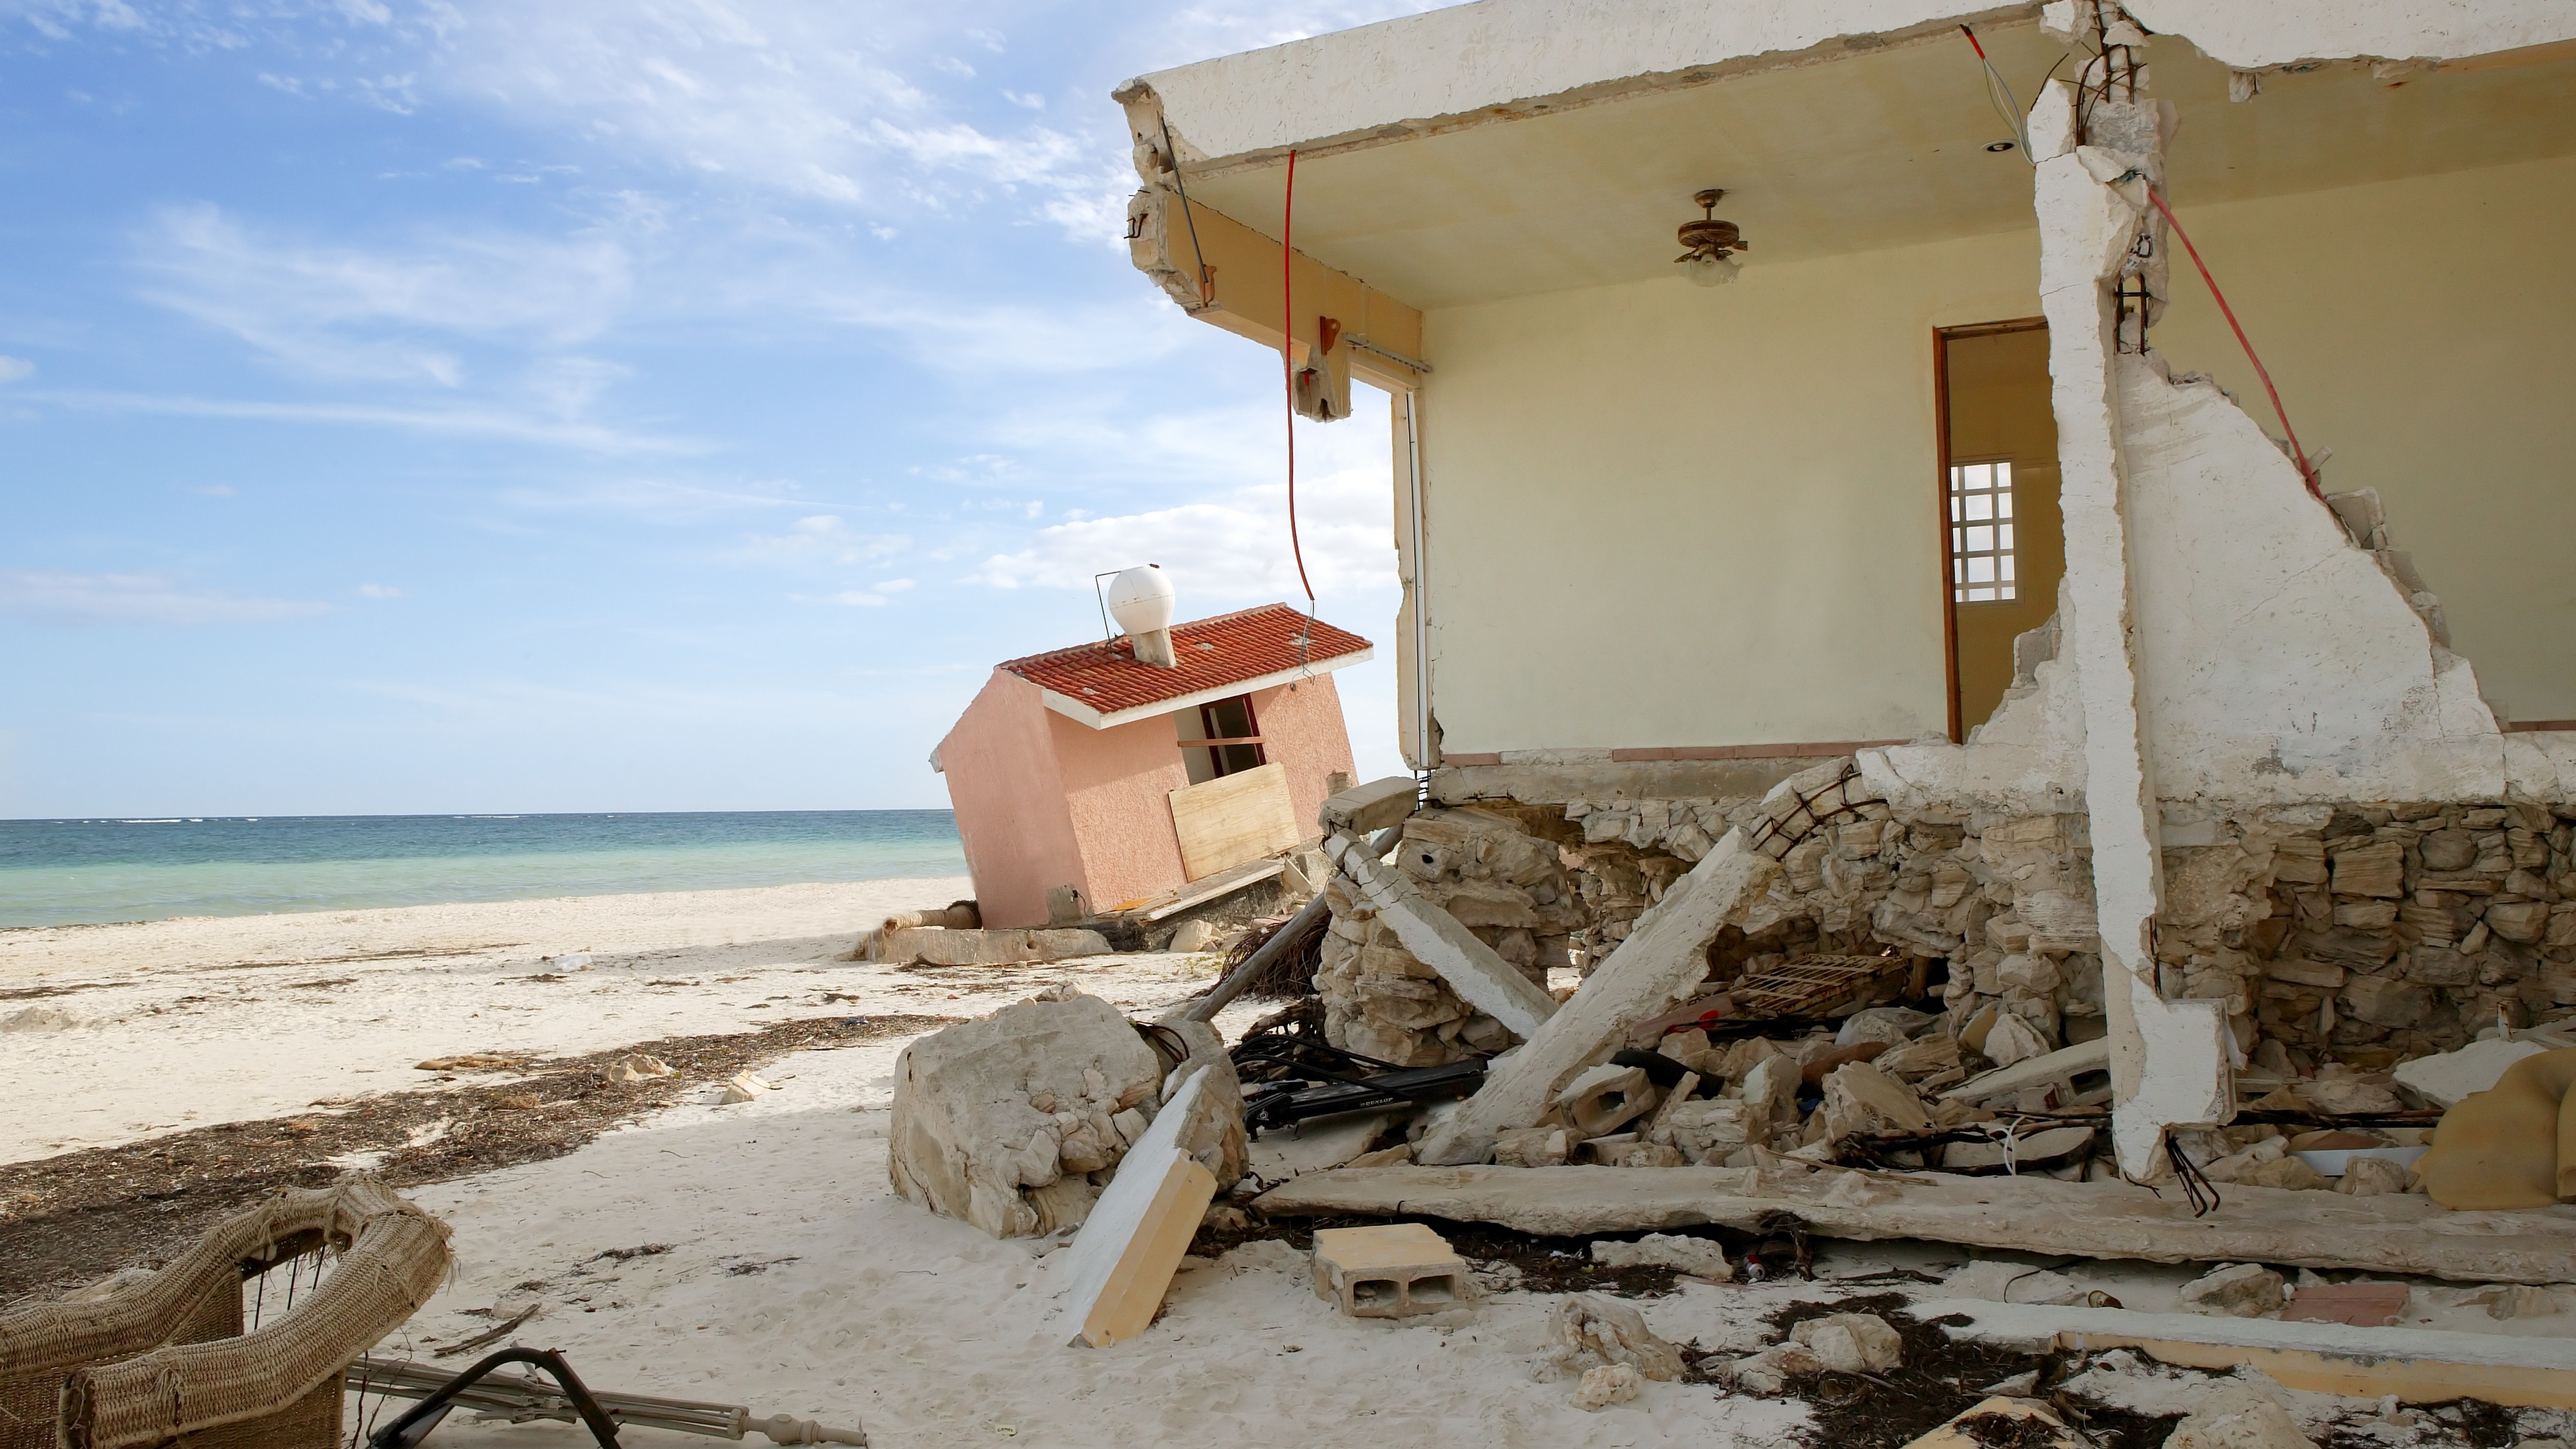 Cancun Caribbean houses after a hurricane